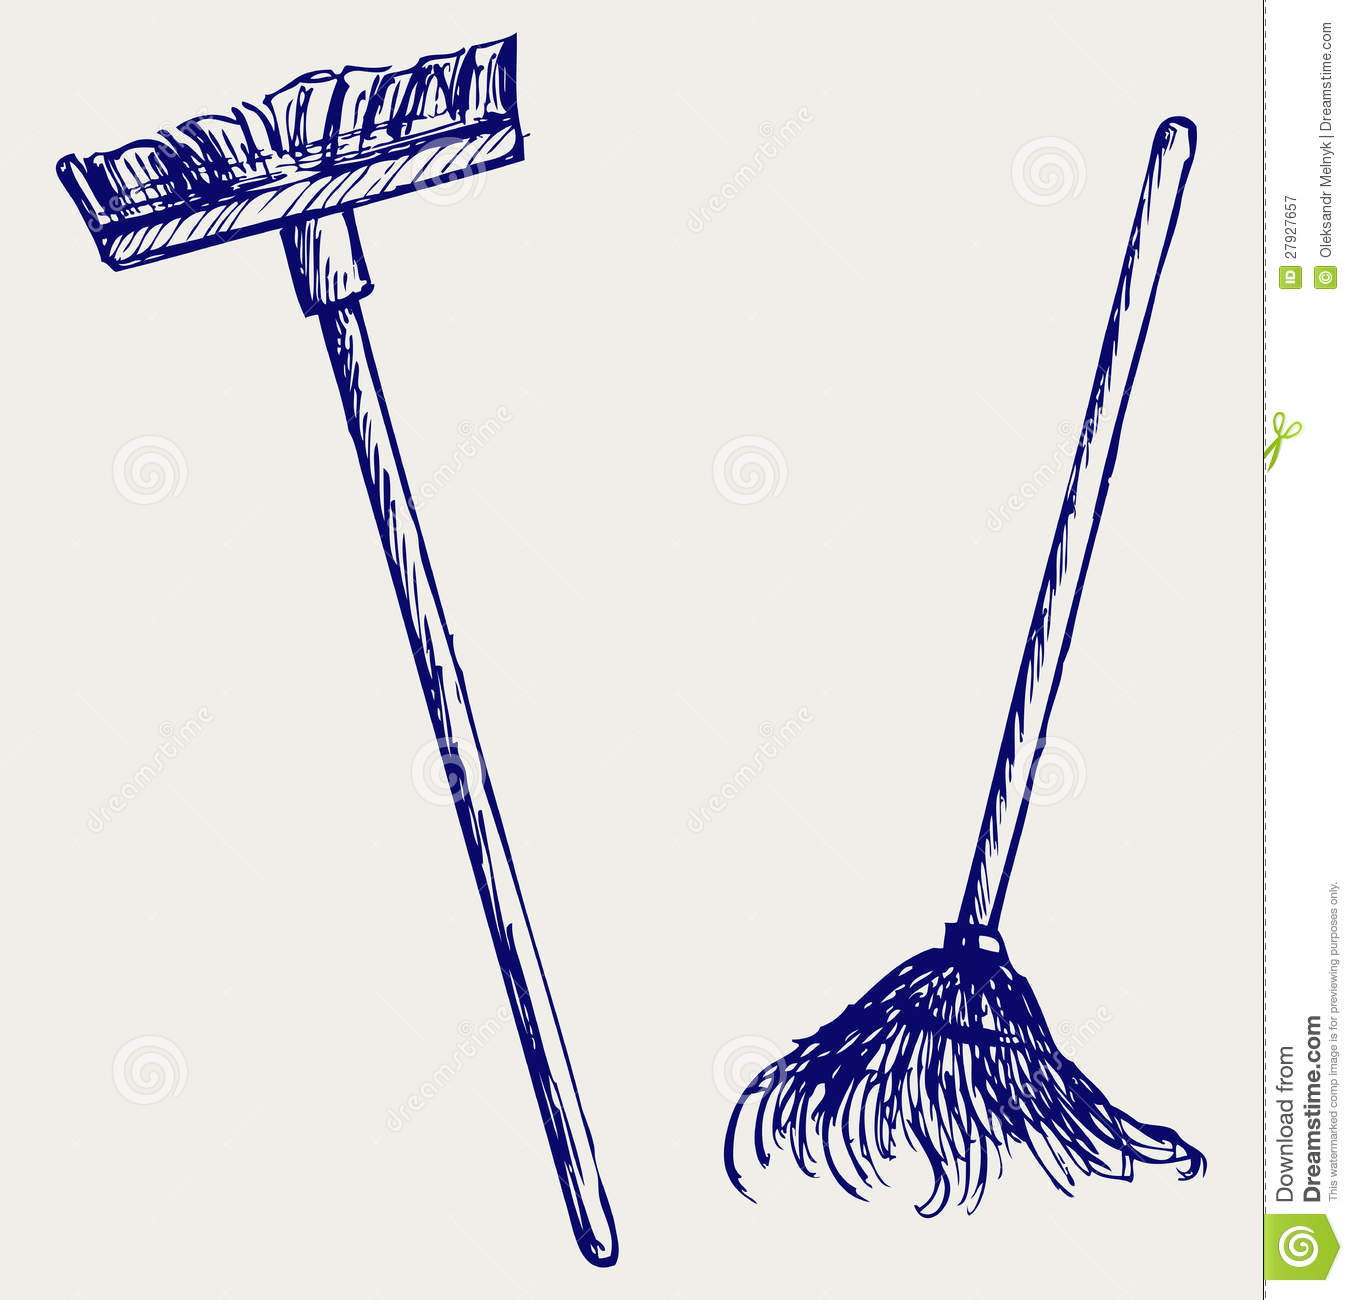 Mop And Broom Stock Vector Illustration Of Creative 27927657